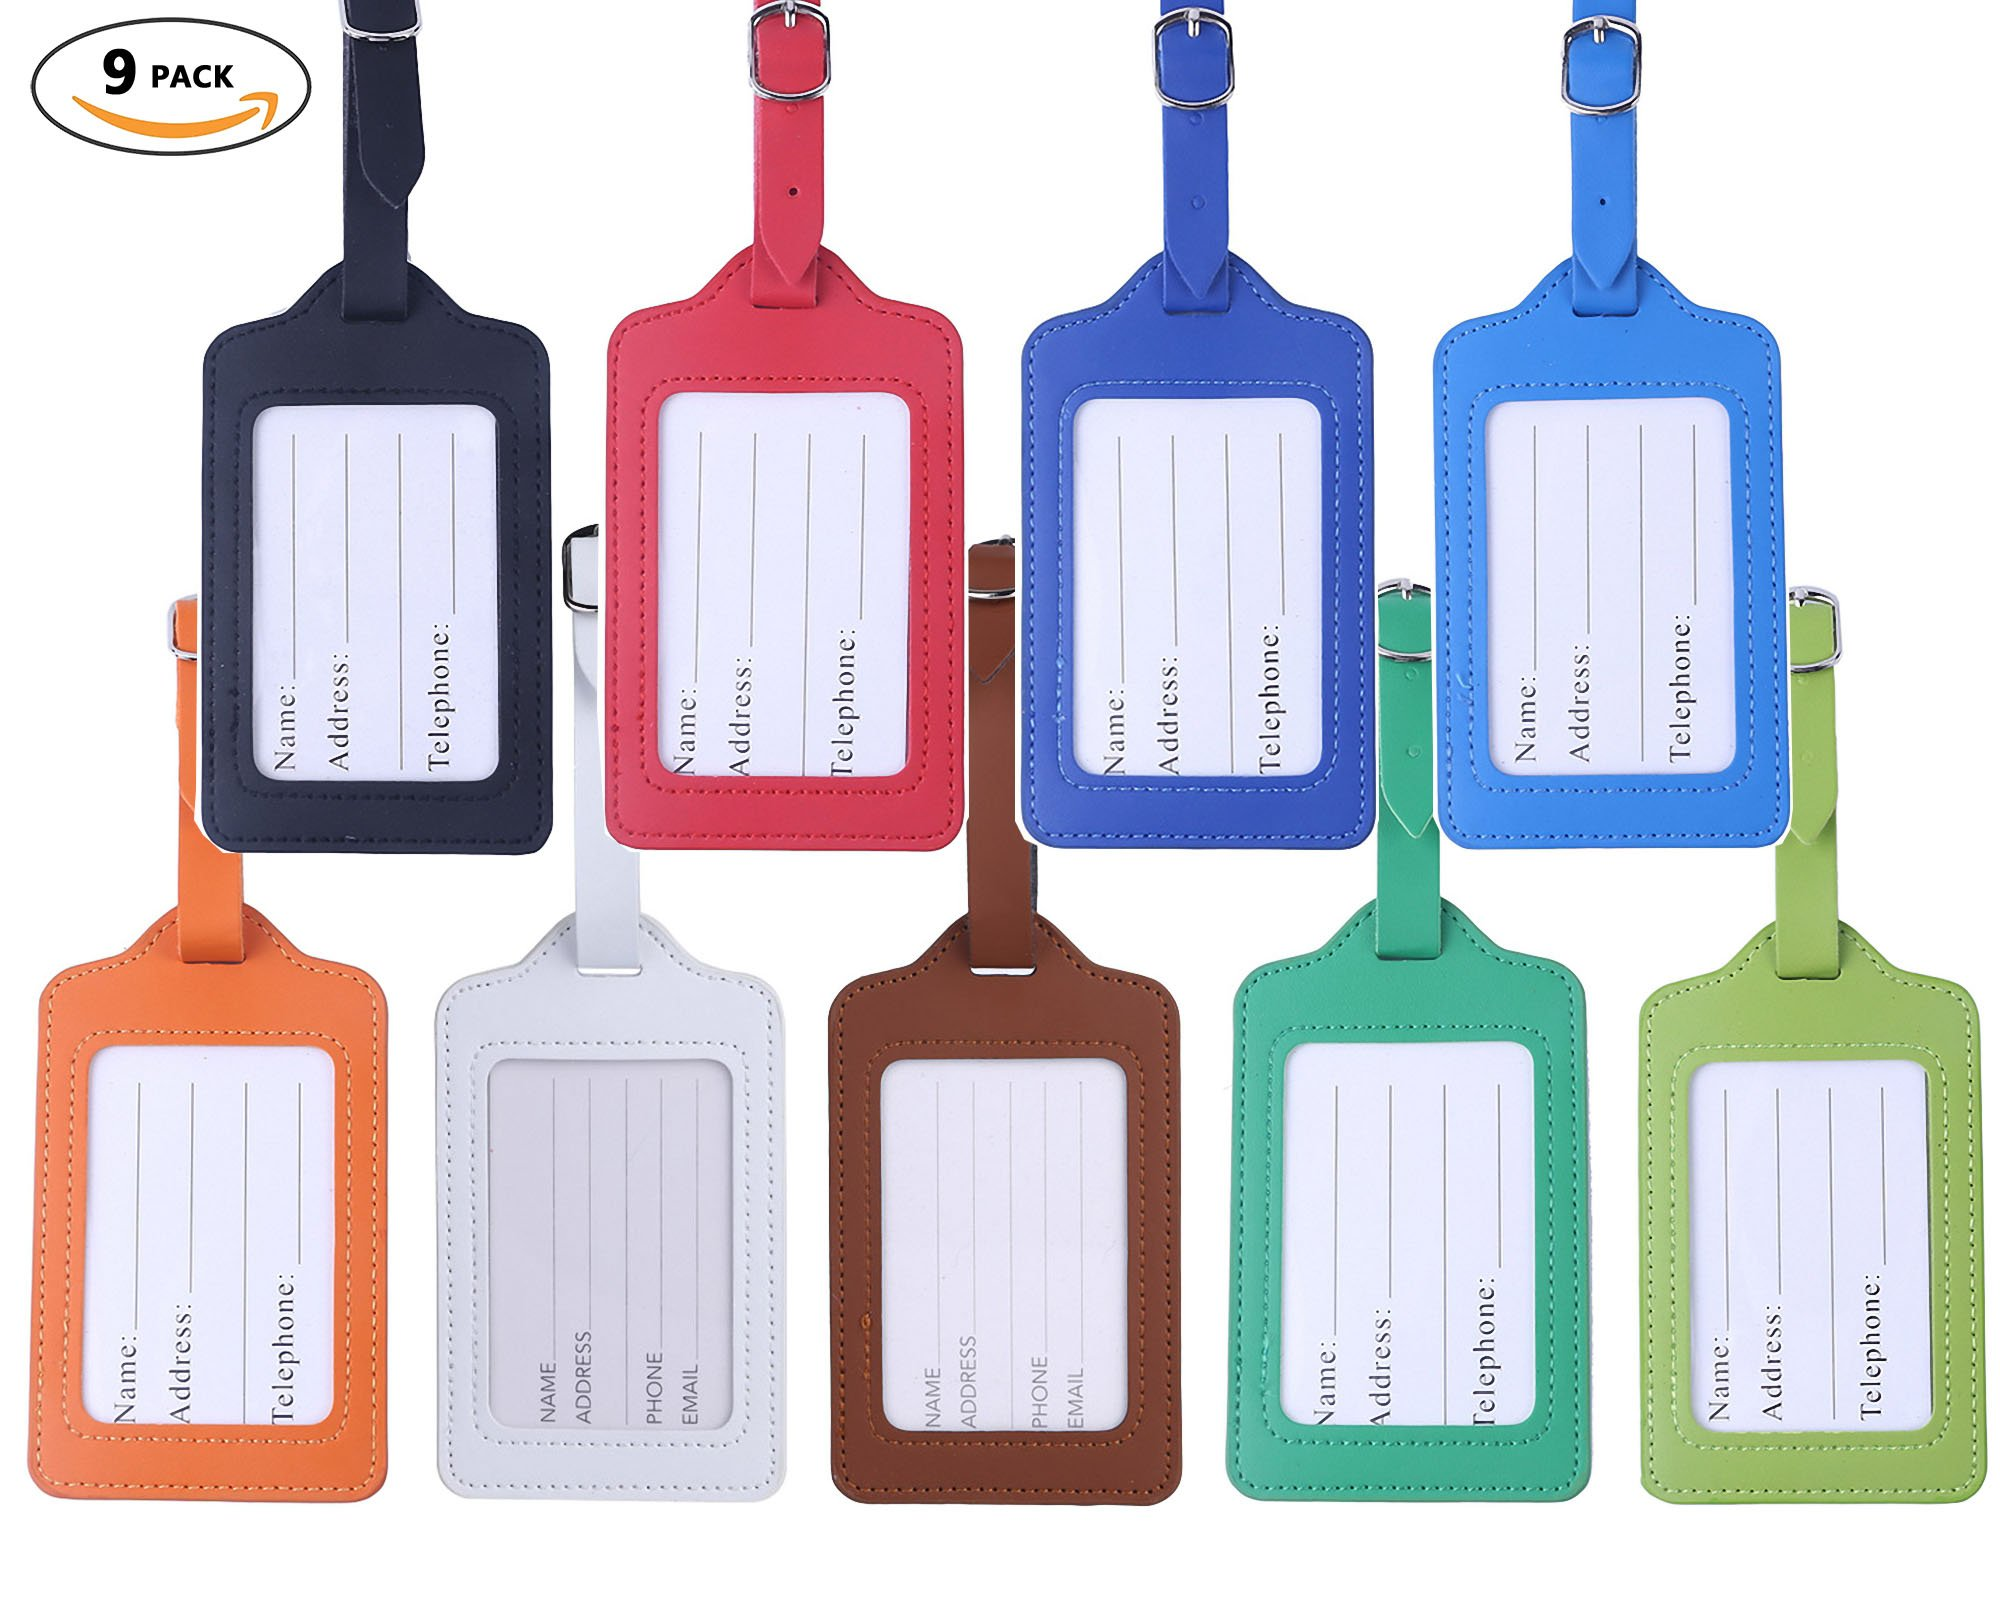 Travel Luggage Tags - Bulk PU Cruise Baggage Tag Set - Identifiers Labels For Suitcases 9 Pack